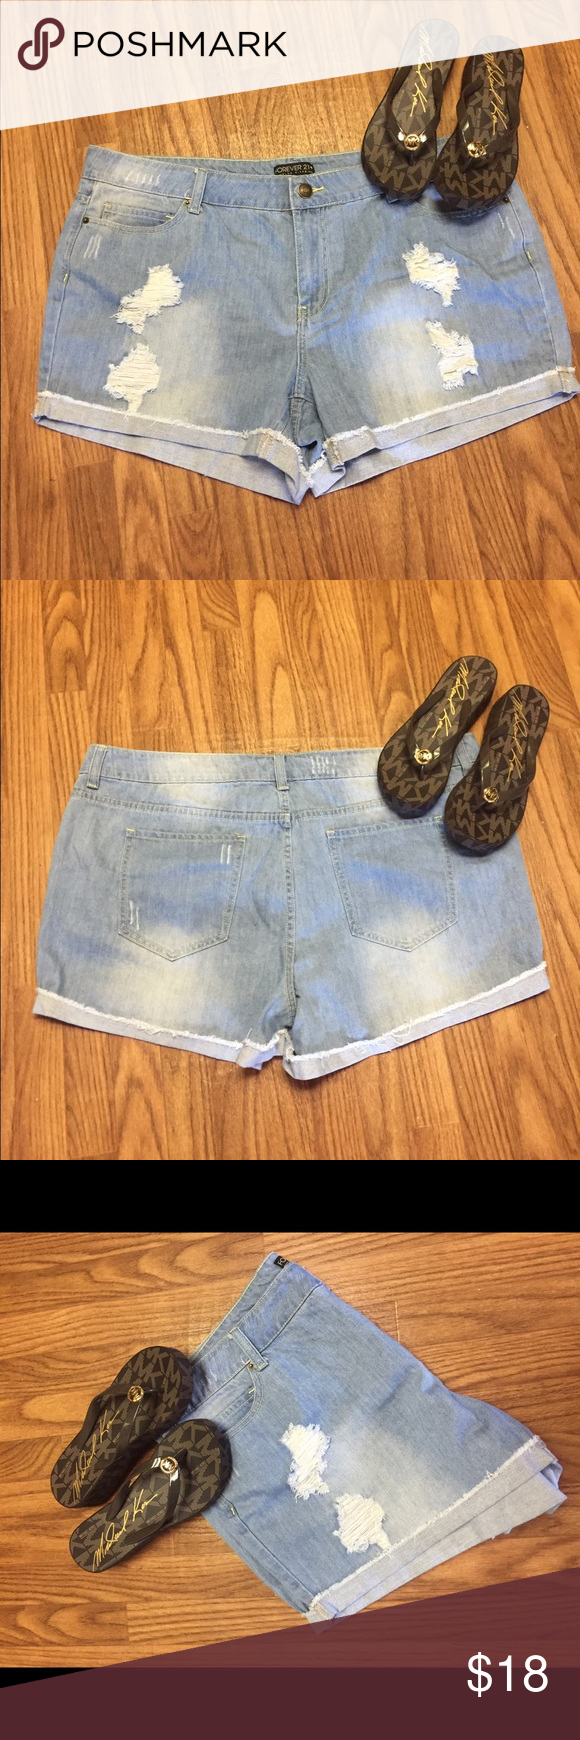 Forever 21 denim shorts Forever 21 denim shorts, preloved in good condition. Forever 21 Shorts Jean Shorts